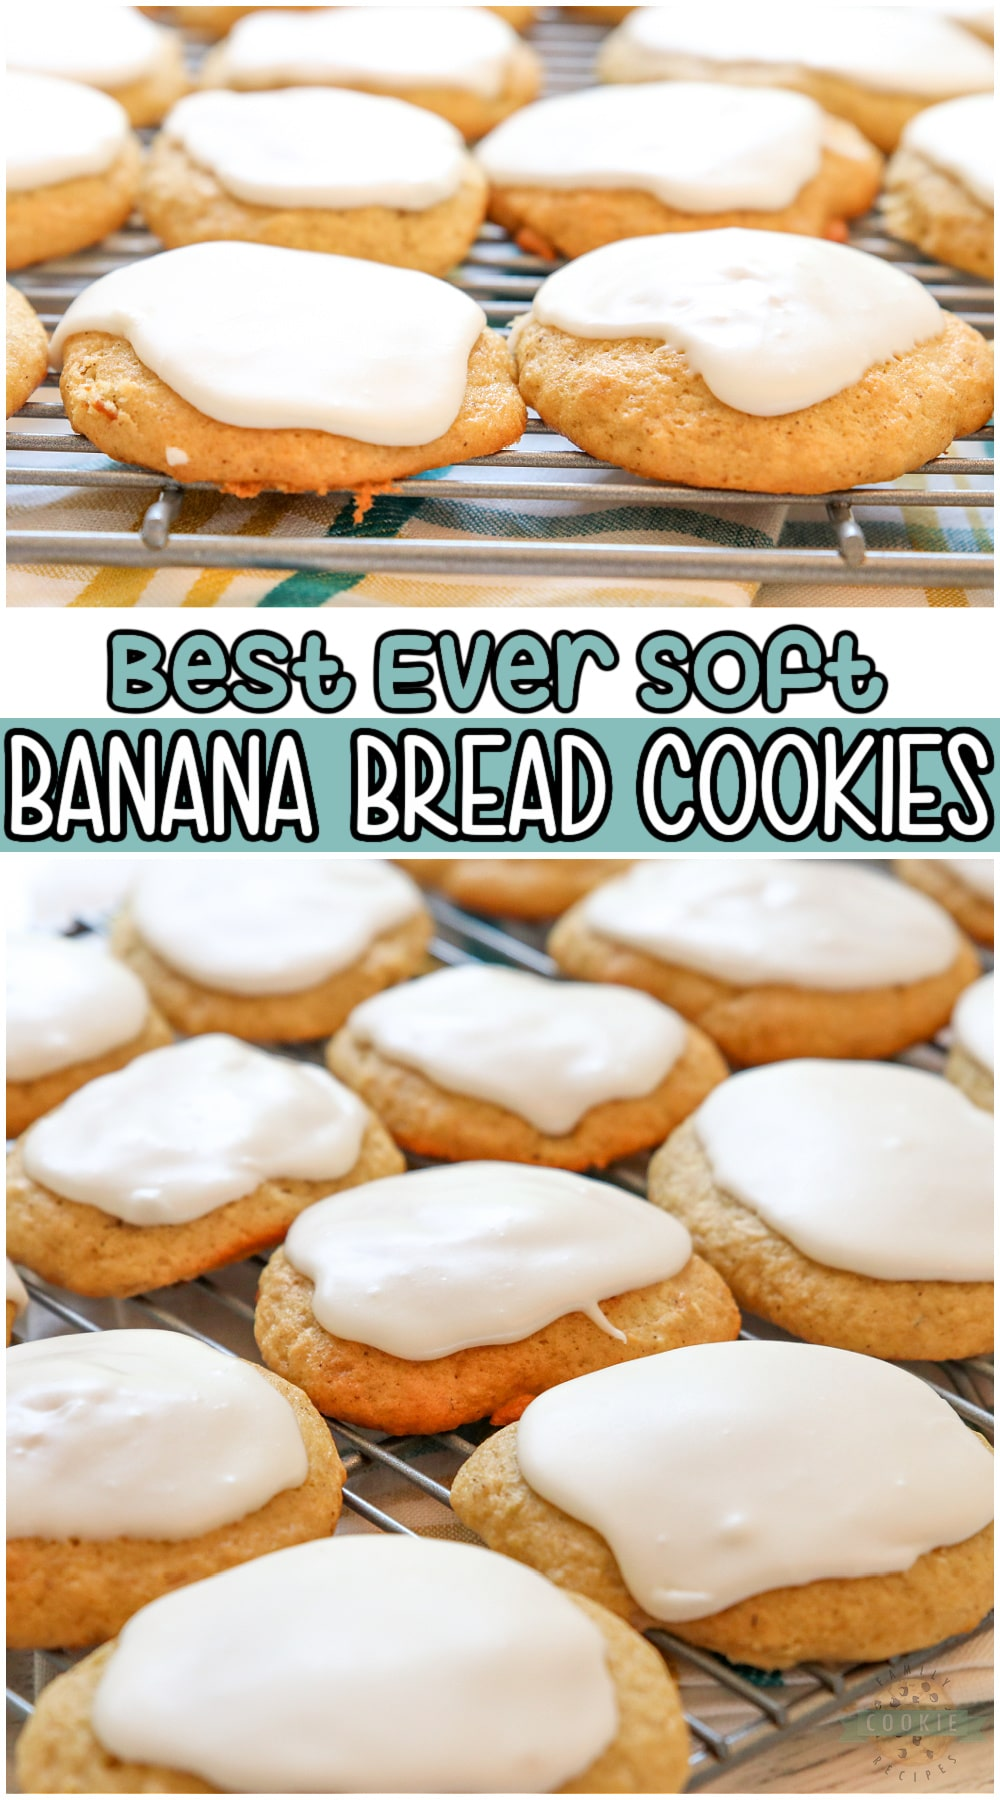 Banana Bread Cookies are soft, sweet cookies made with ripe bananas and topped with a simple vanilla glaze. They're everything you love about Banana Bread, but in cookie form! #cookies #banana #bananabread #baking #easyrecipe from FAMILY COOKIE RECIPES via @familycookierecipes